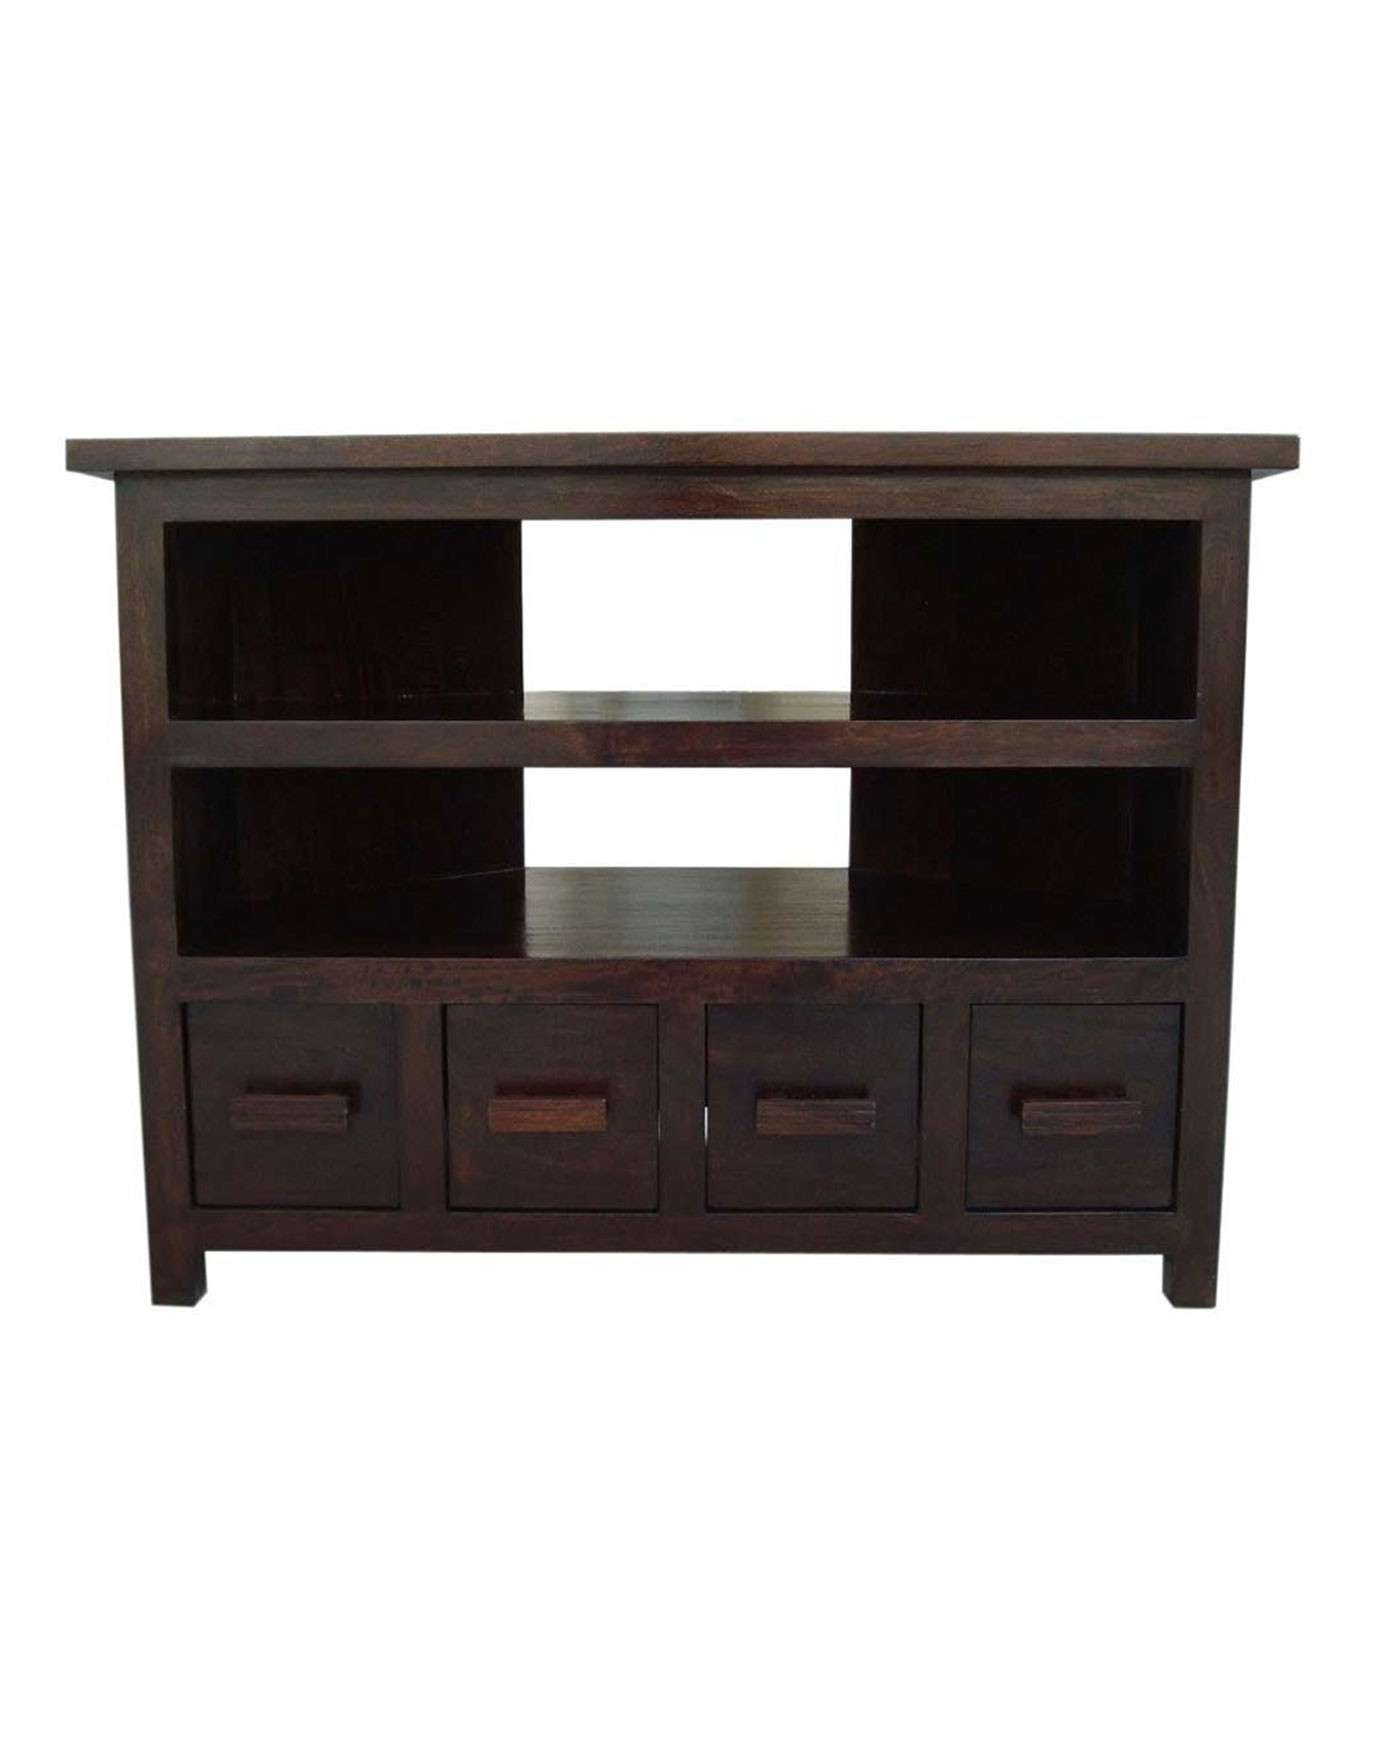 Mangat Tall Corner Tv Unit – Homescapes With Dark Wood Corner Tv Cabinets (View 2 of 20)